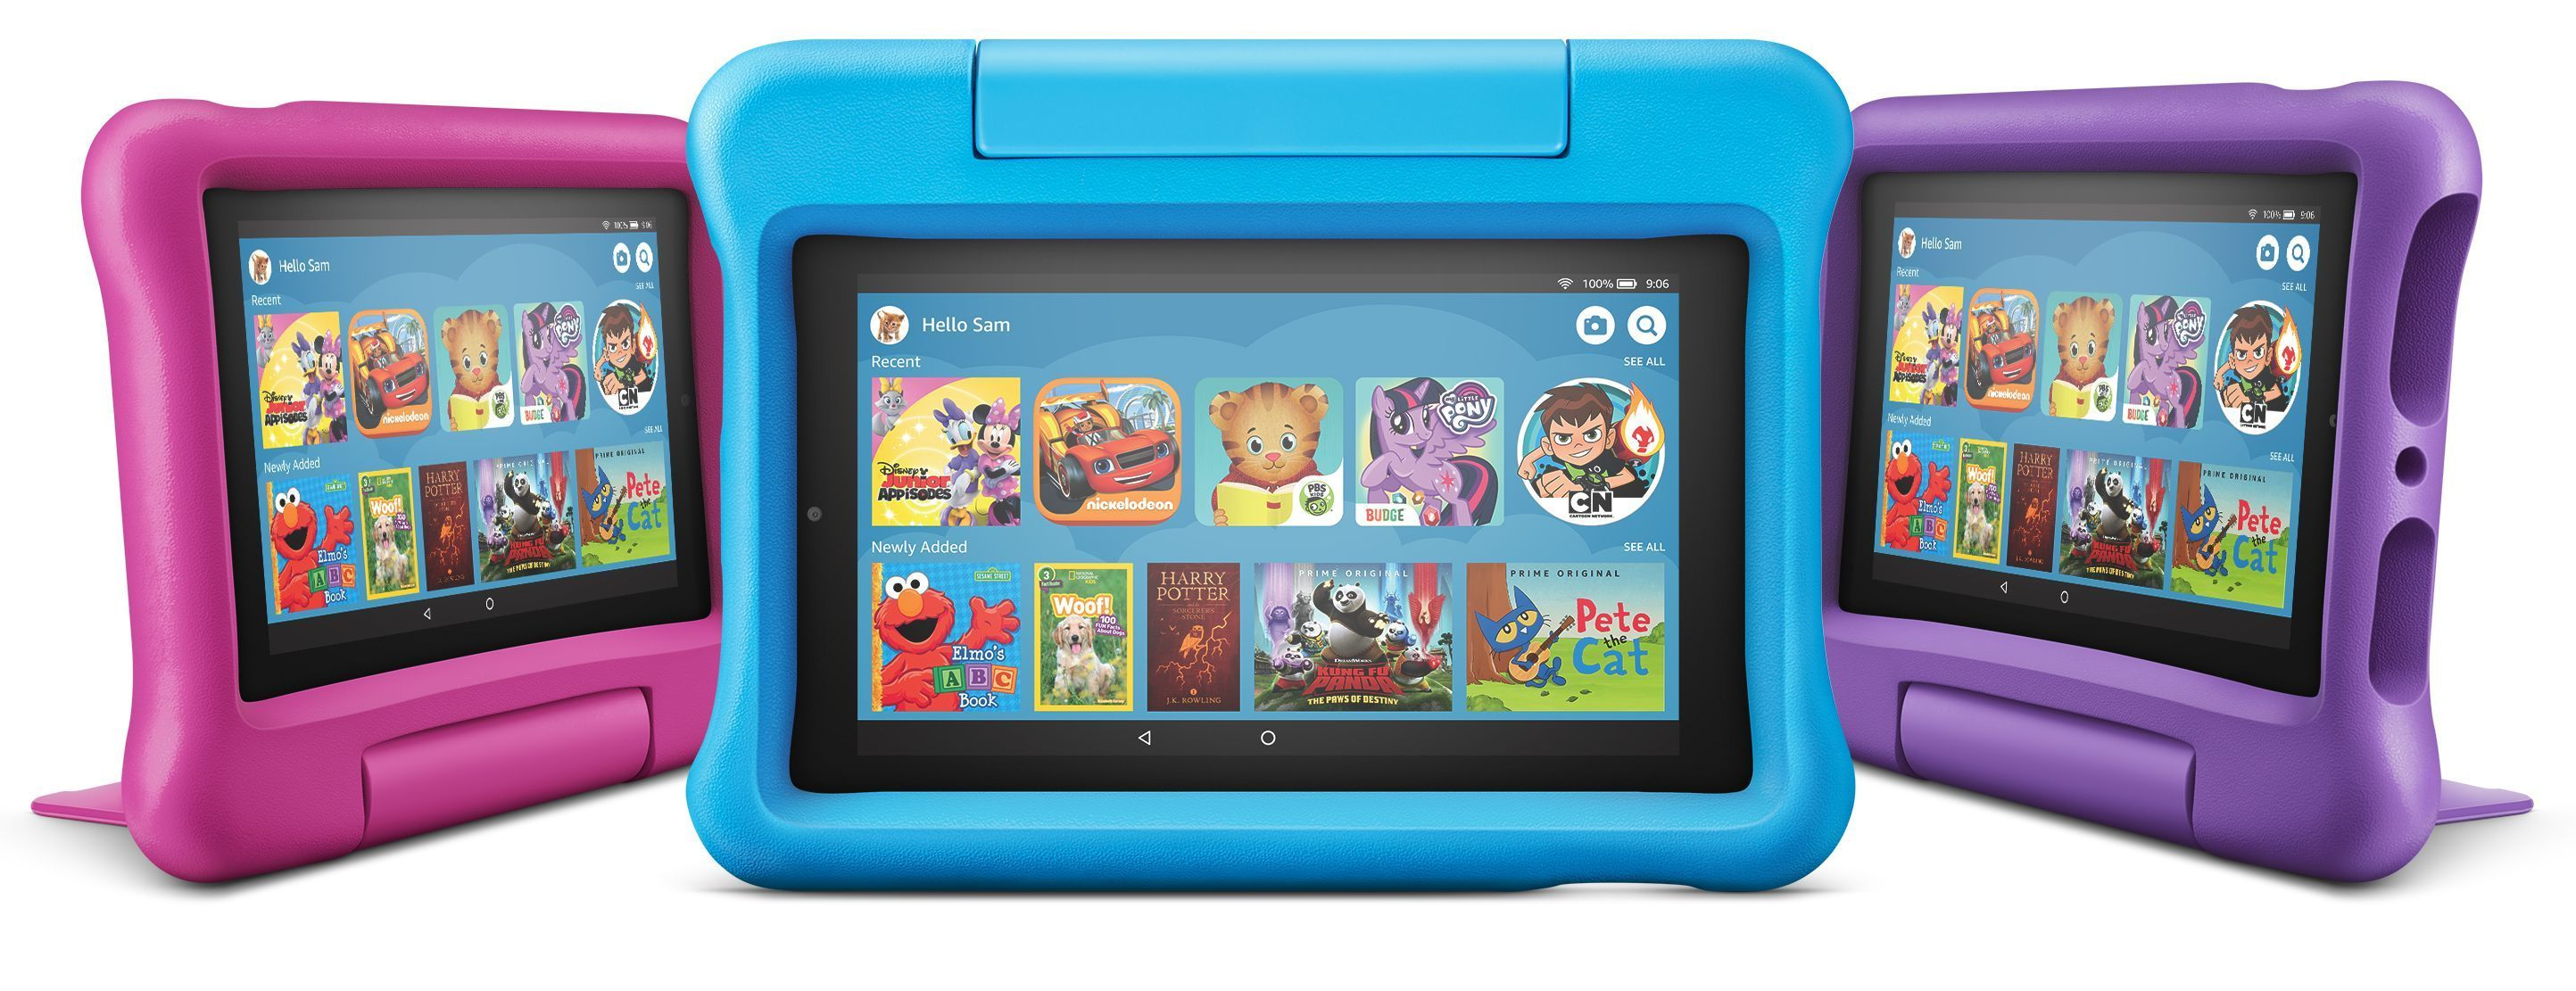 Amazon's upgraded Fire 7 and Fire 7 Kids Edition tablets